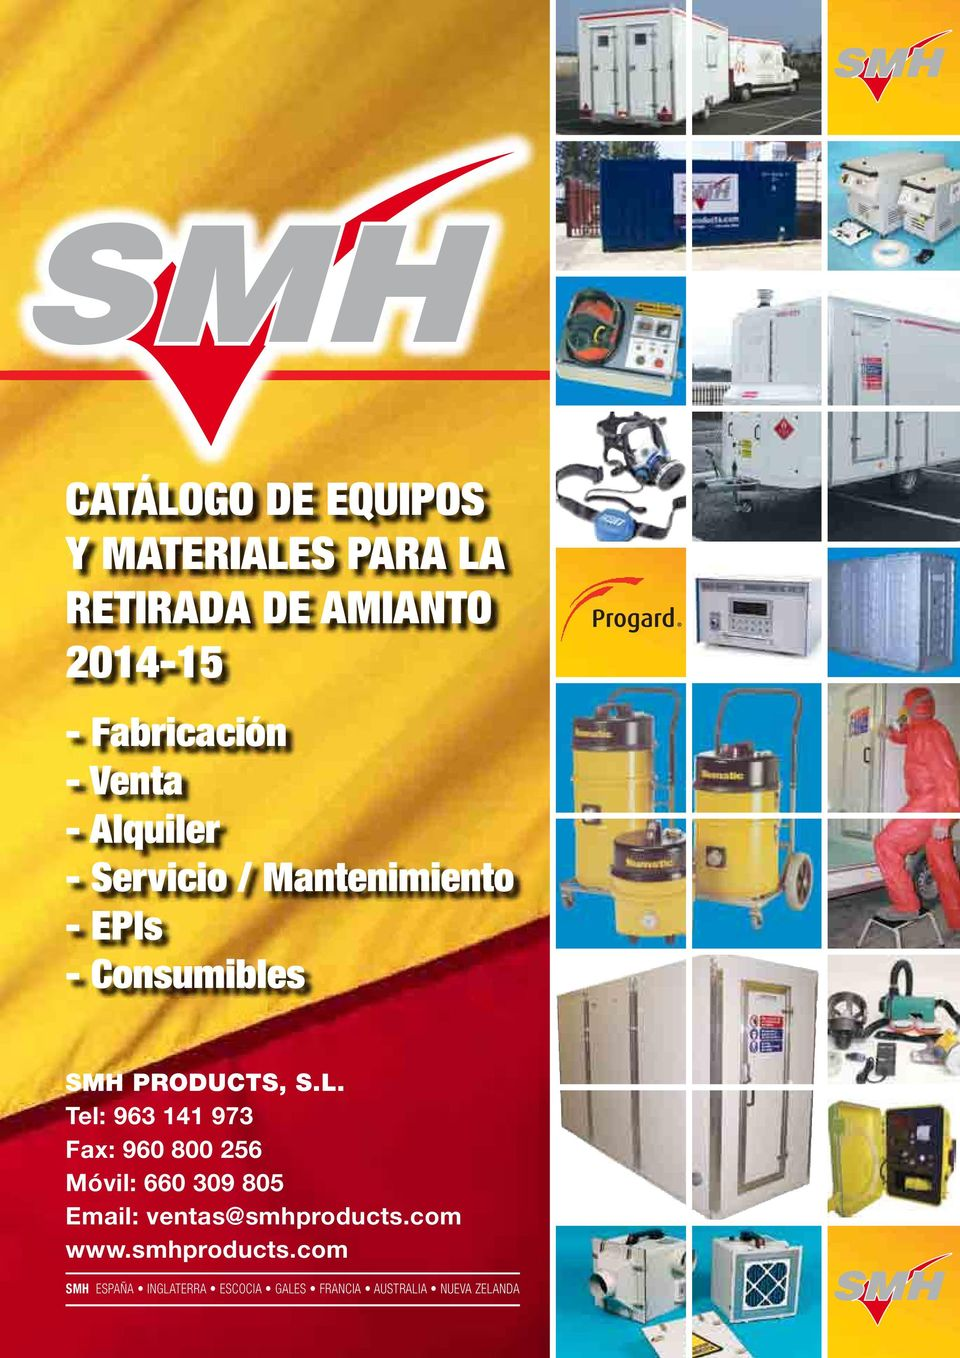 Tel: 963 4 973 Fax: 960 800 256 Móvil: 660 309 805 Email: ventas@smhproducts.